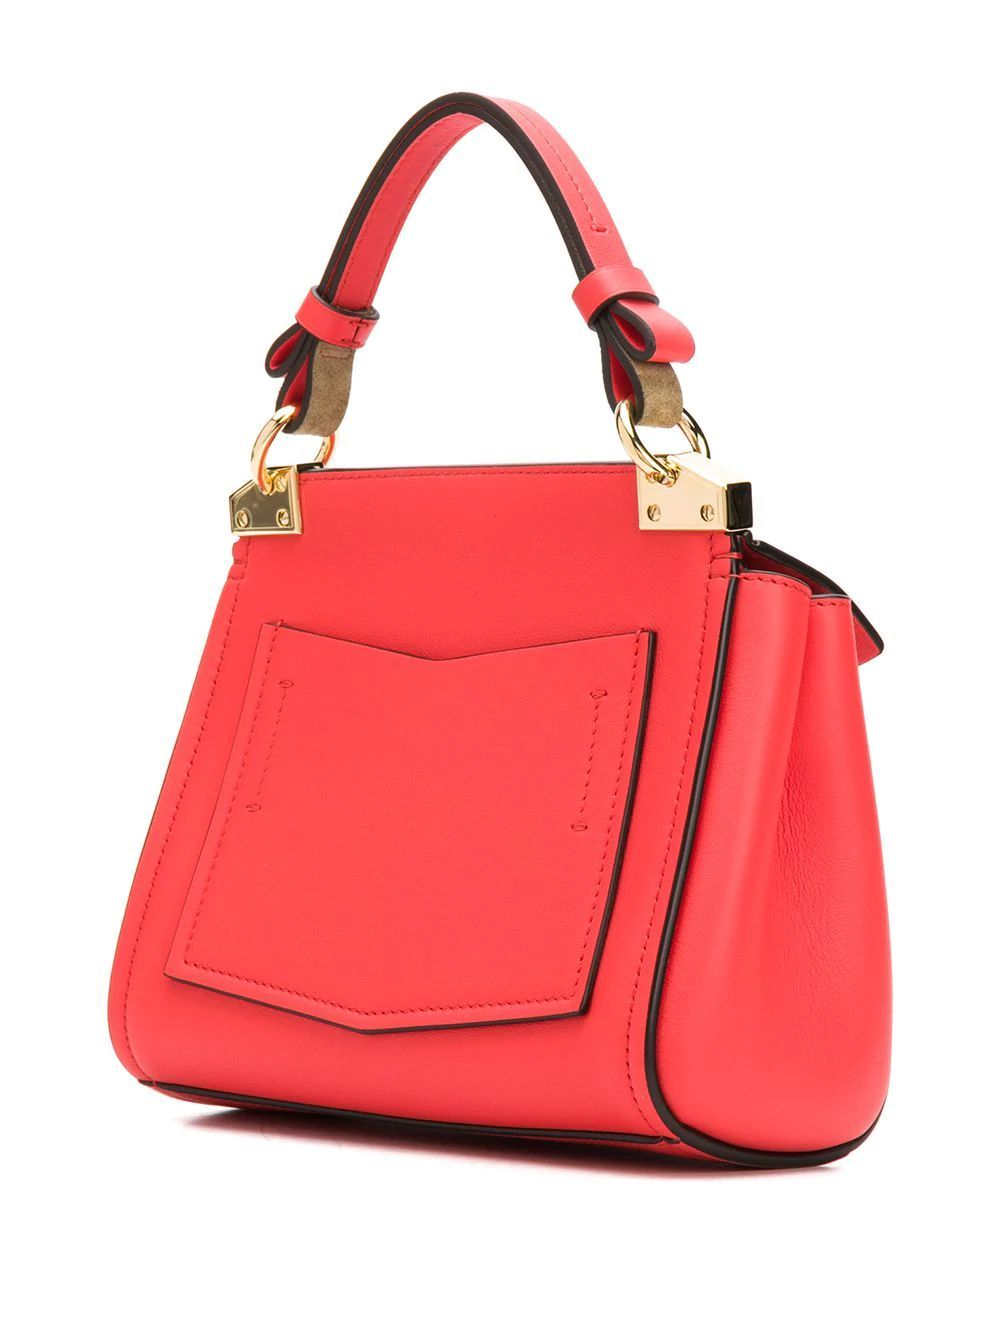 GIVENCHY WOMEN'S BB50C3B0LG600 RED LEATHER HANDBAG